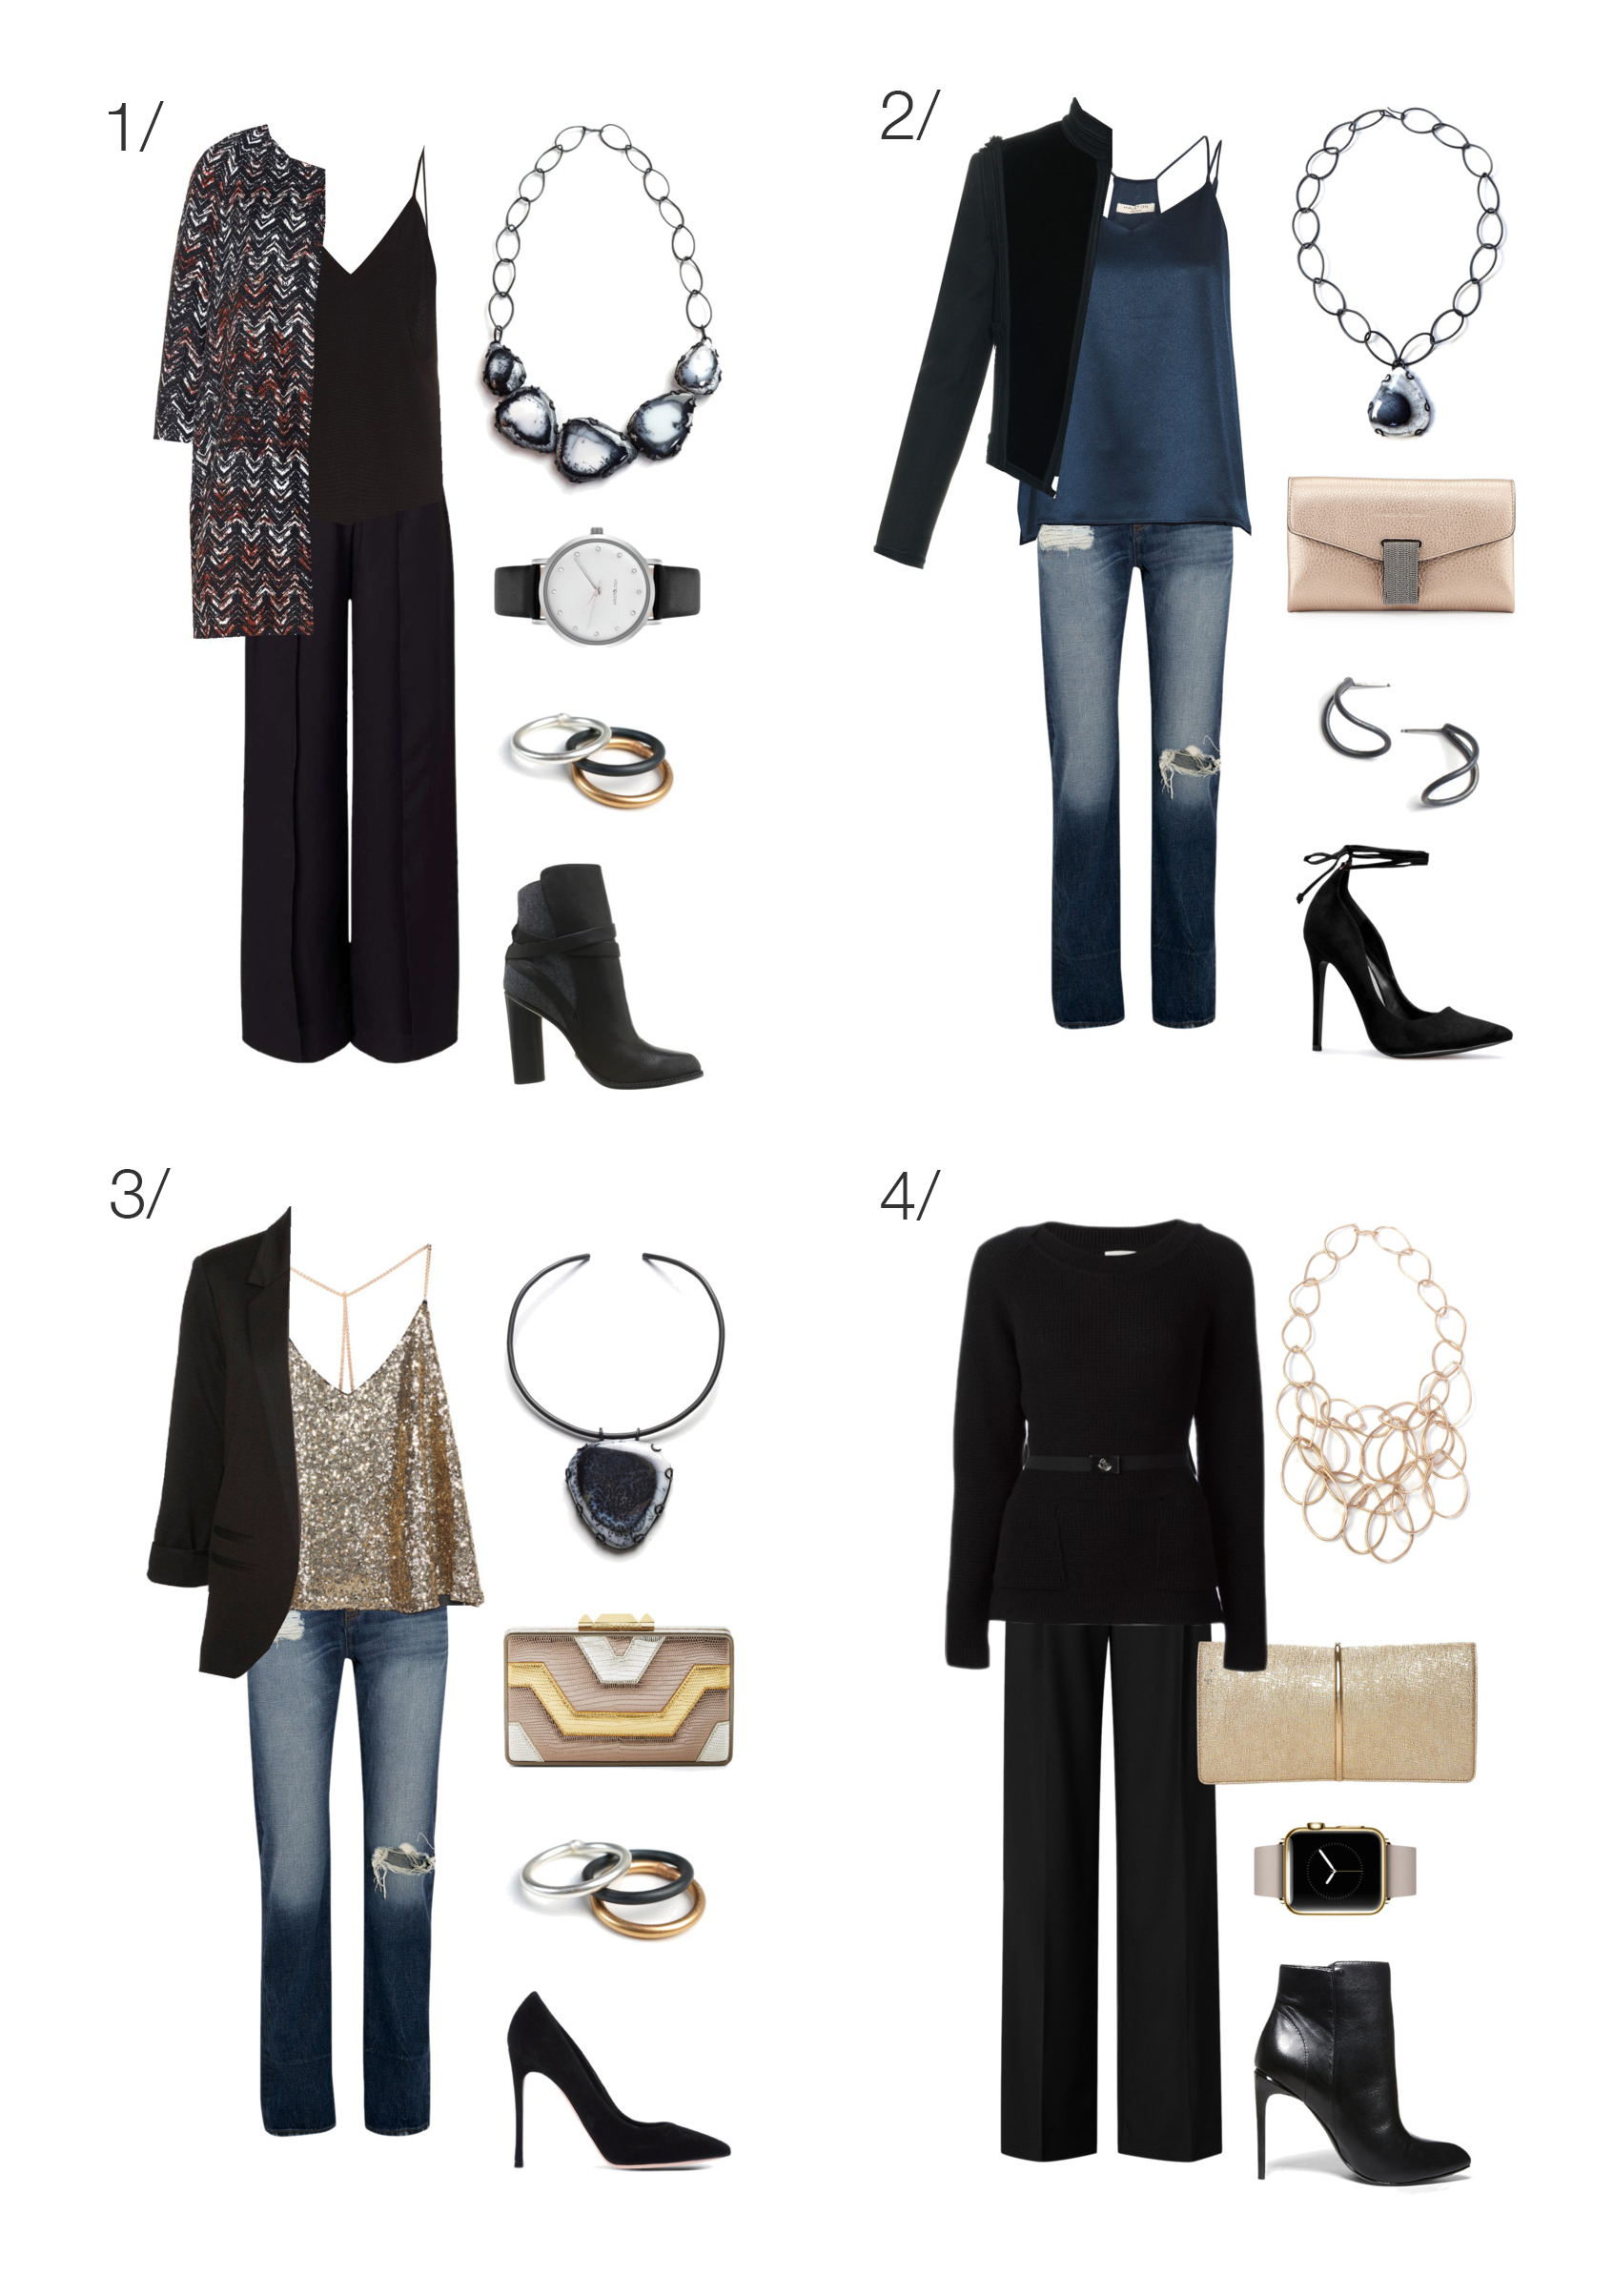 8 chic ways to wear pants to a holiday party // click through for outfit details